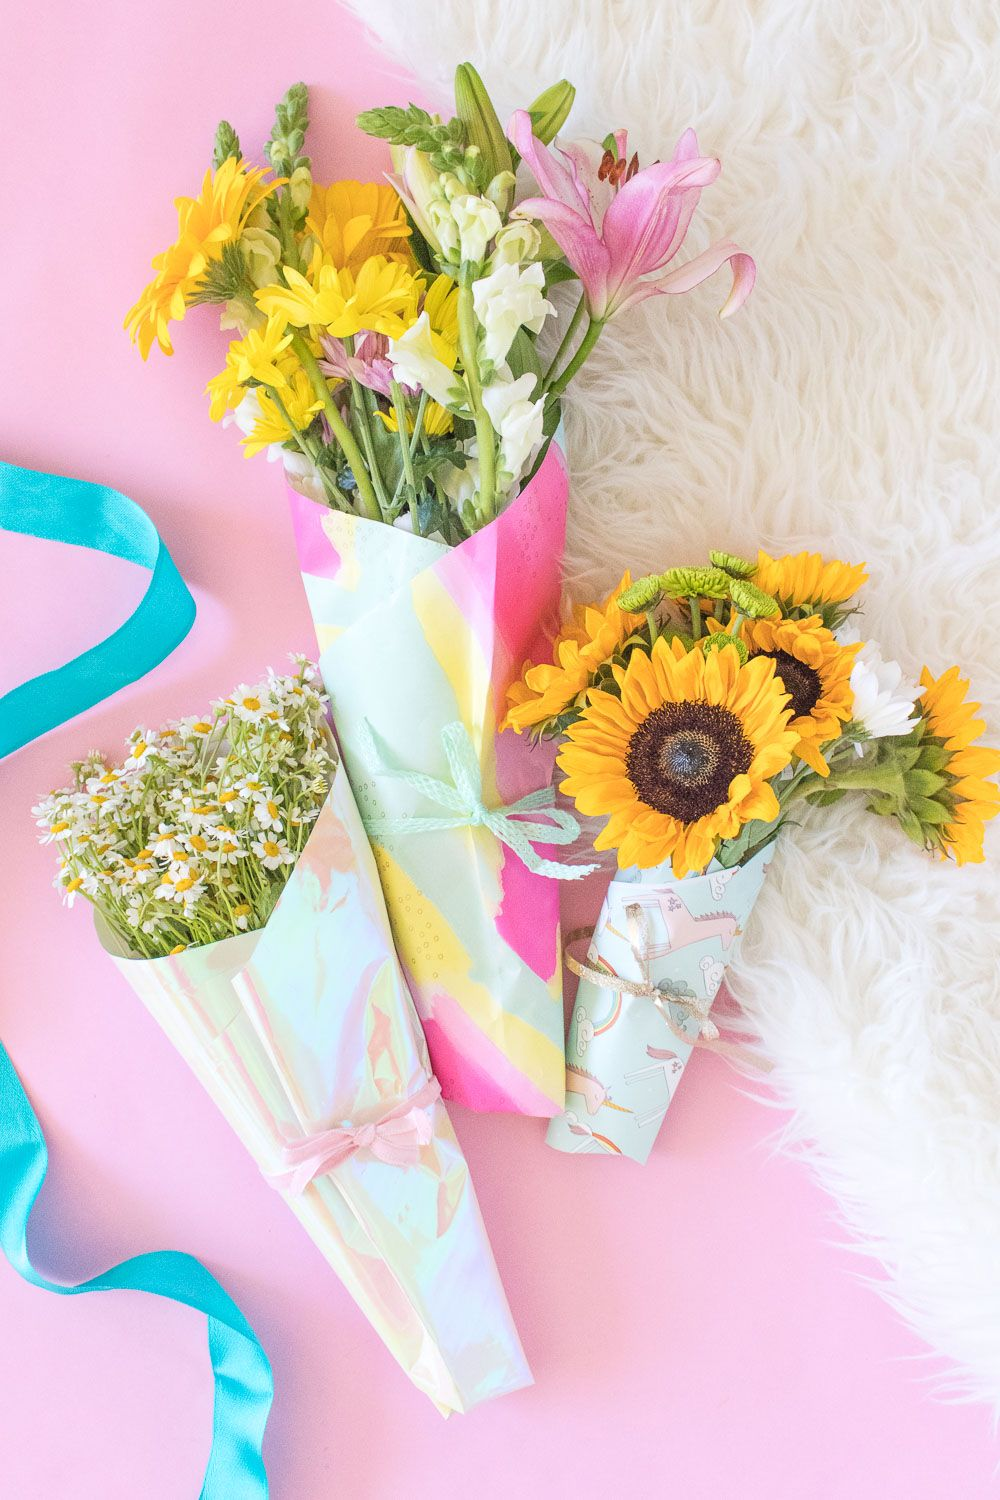 48 Diy Mother S Day Gifts Crafts Best Homemade Mother S Day Present Ideas